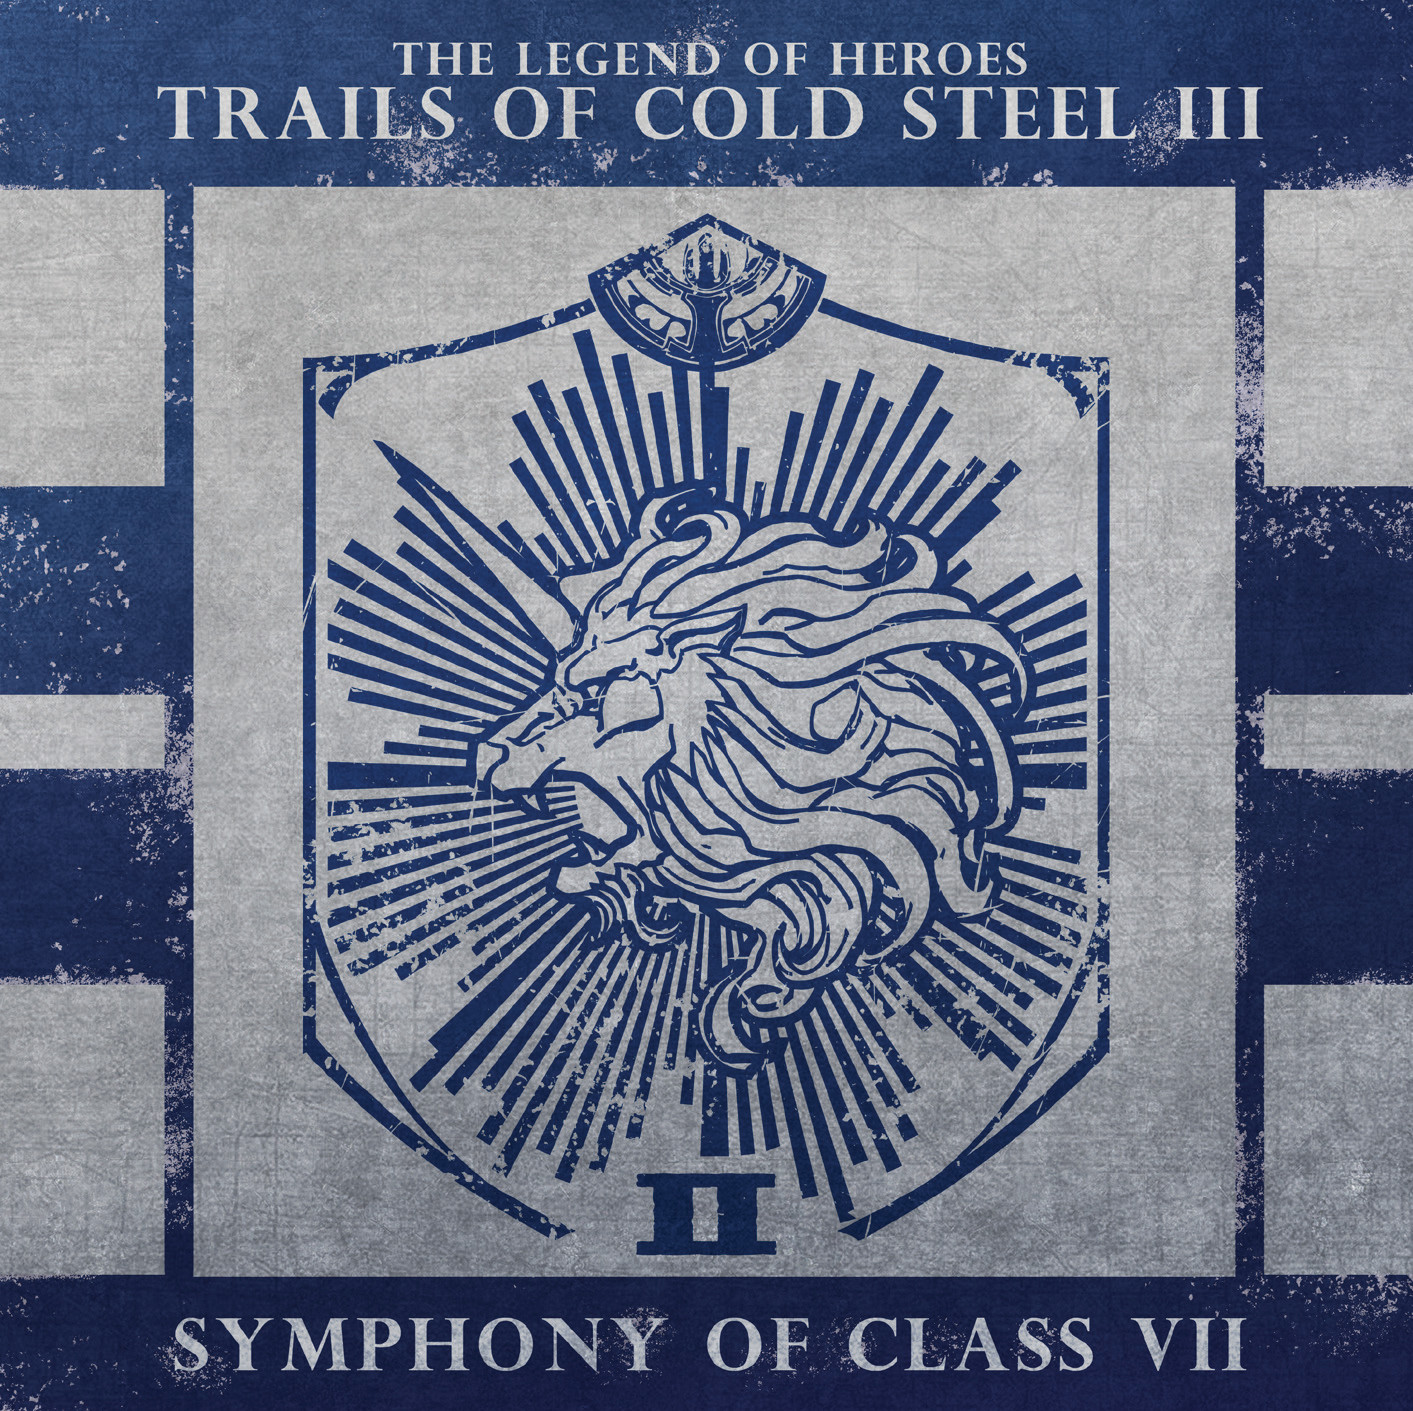 The Legend of Heroes: Trails of Cold Steel III  - Symphony of Class VII Digital Soundtrack screenshot